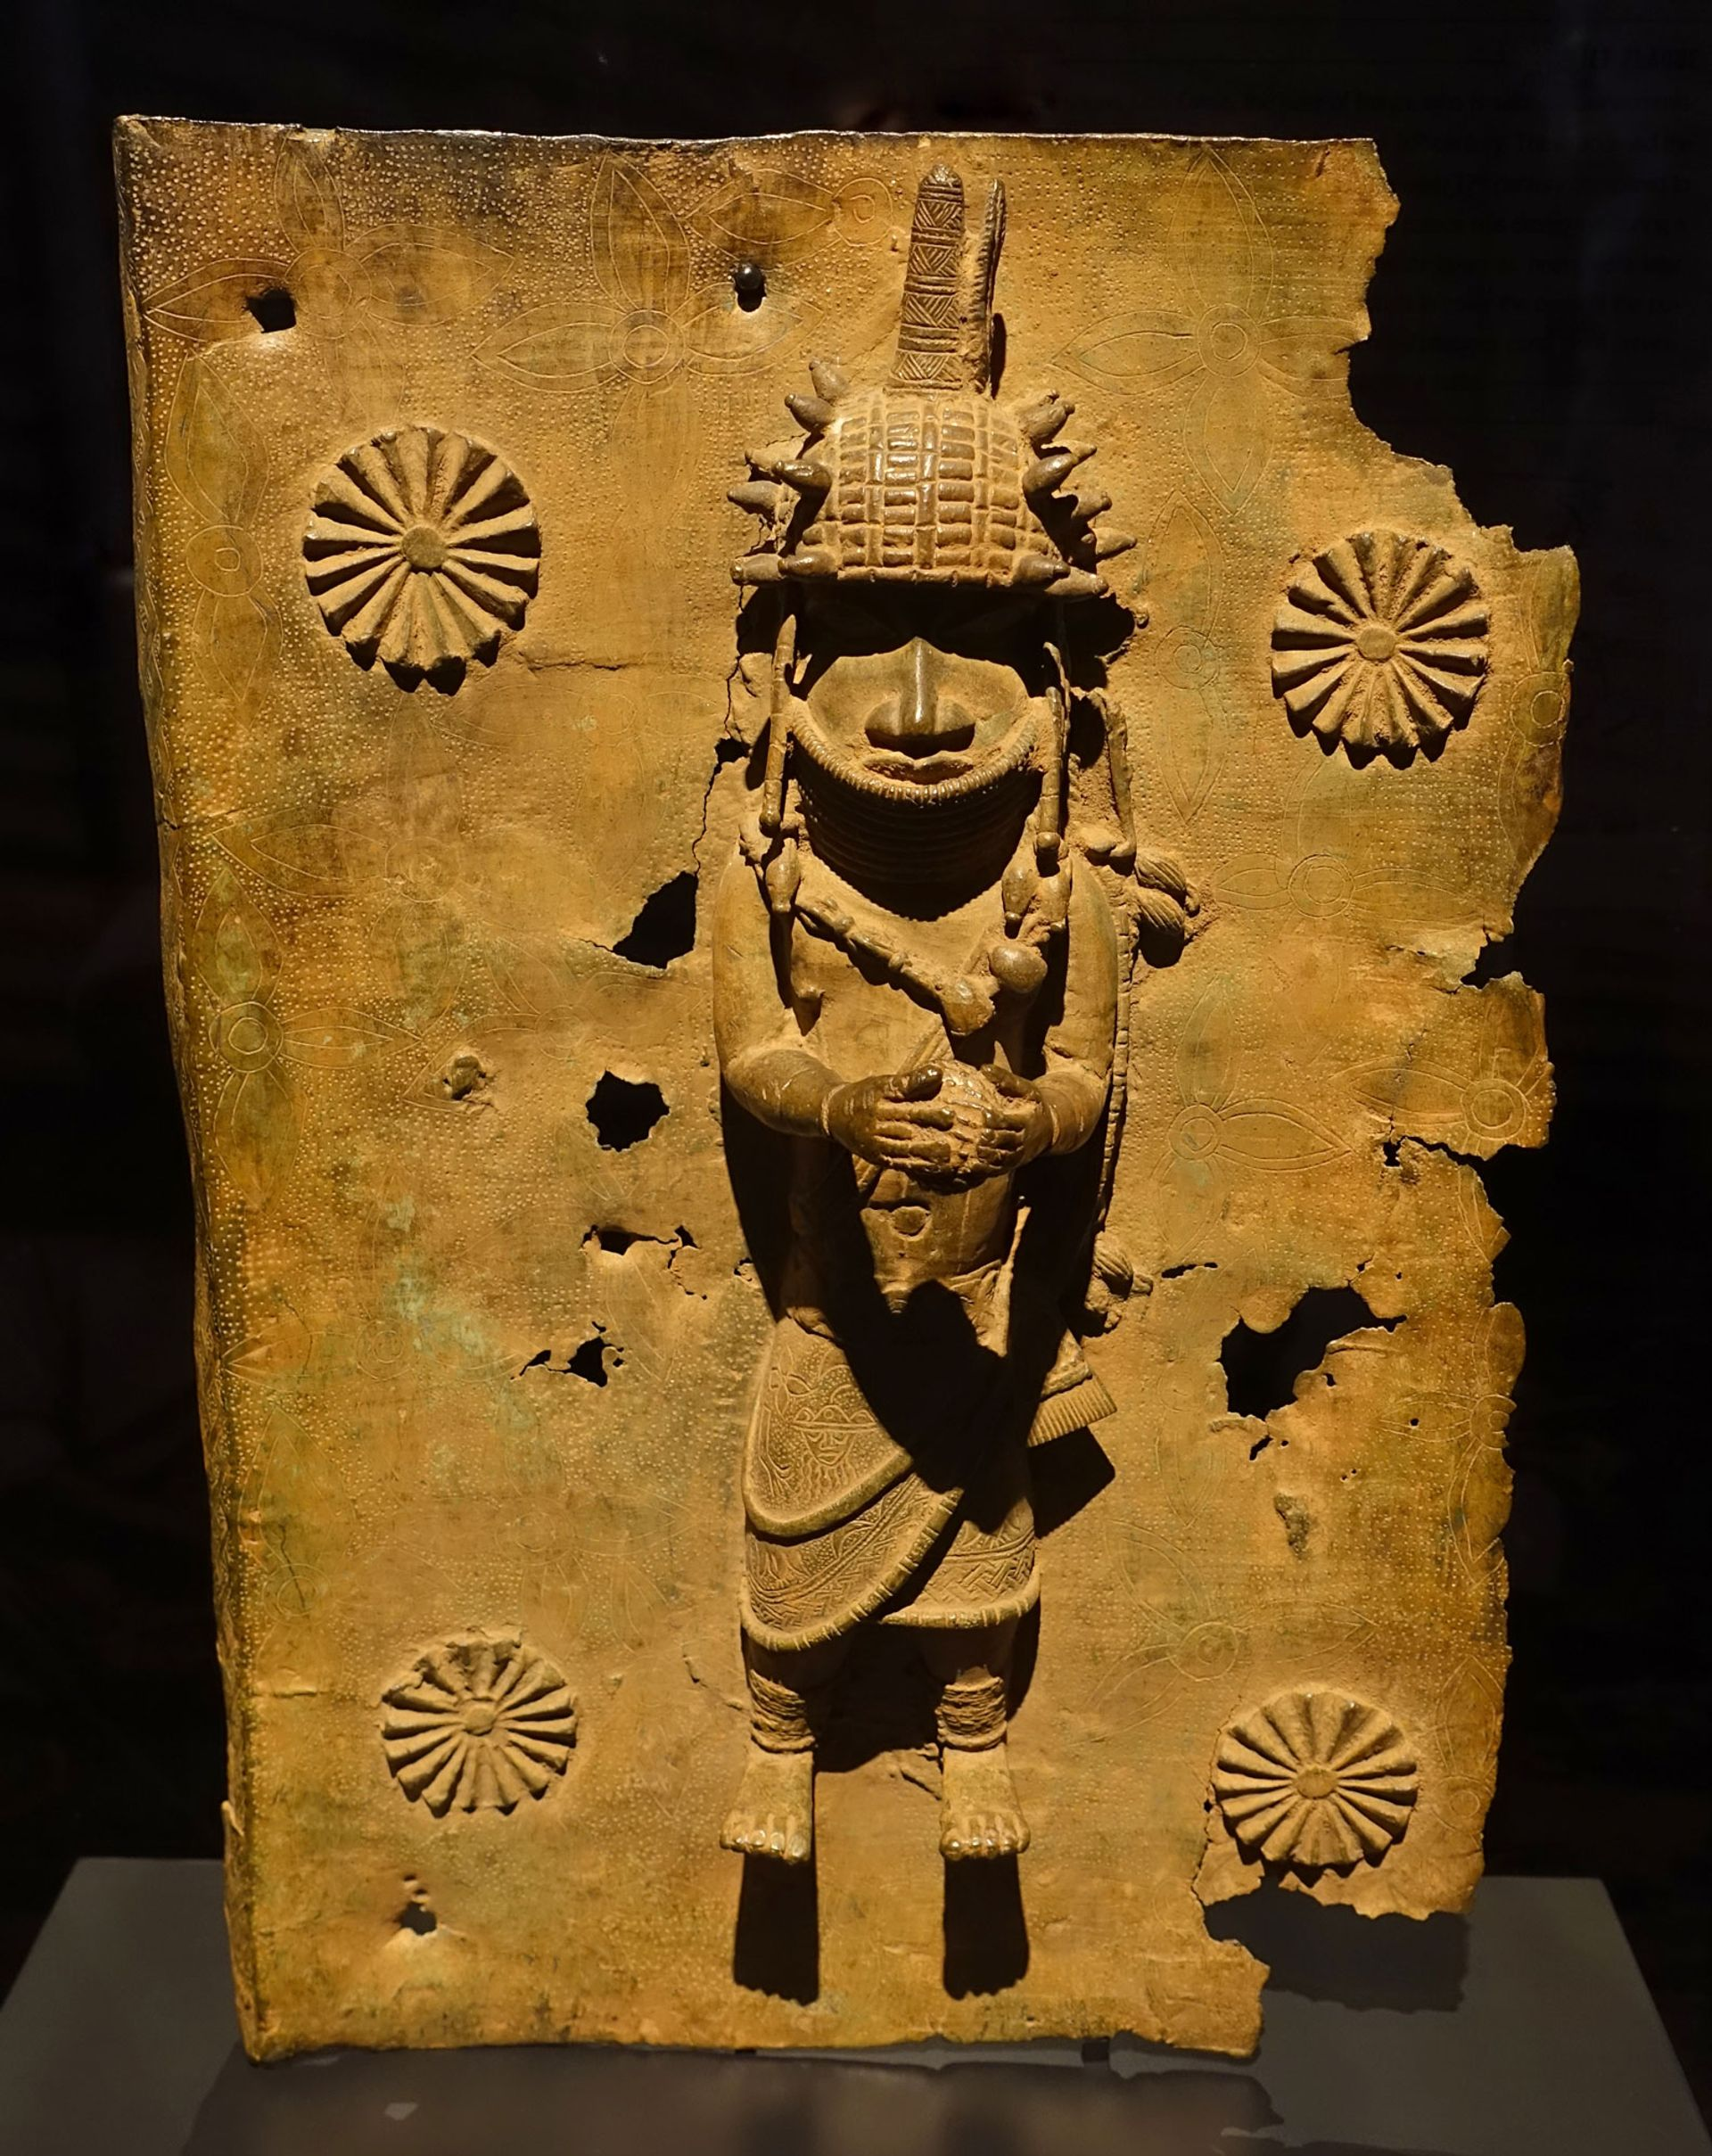 A relief plaque from the royal palace of the Kingdom of Benin, now in the collection of the Rautenstrauch-Joest-Museum of ethnography in Cologne Photo:Daderot